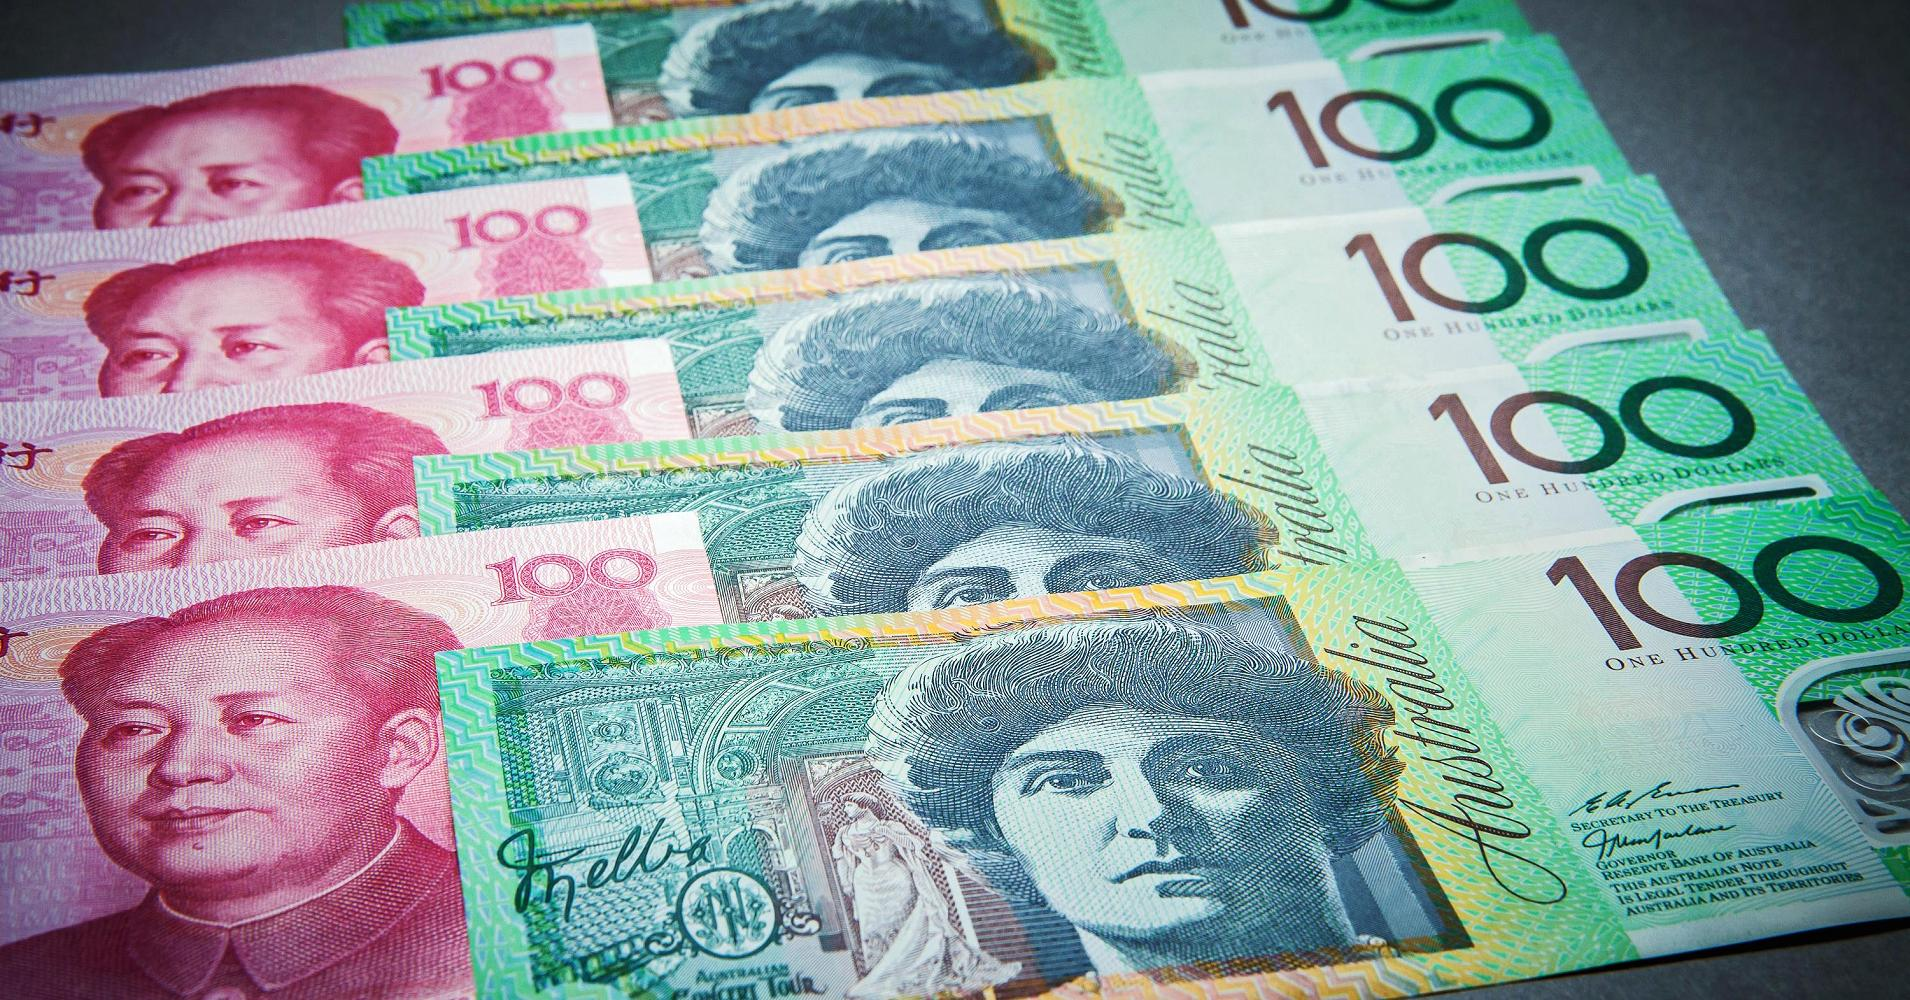 This cny to aud converter can convert currency unit chinese yuan (cny) to australian dollar (aud)